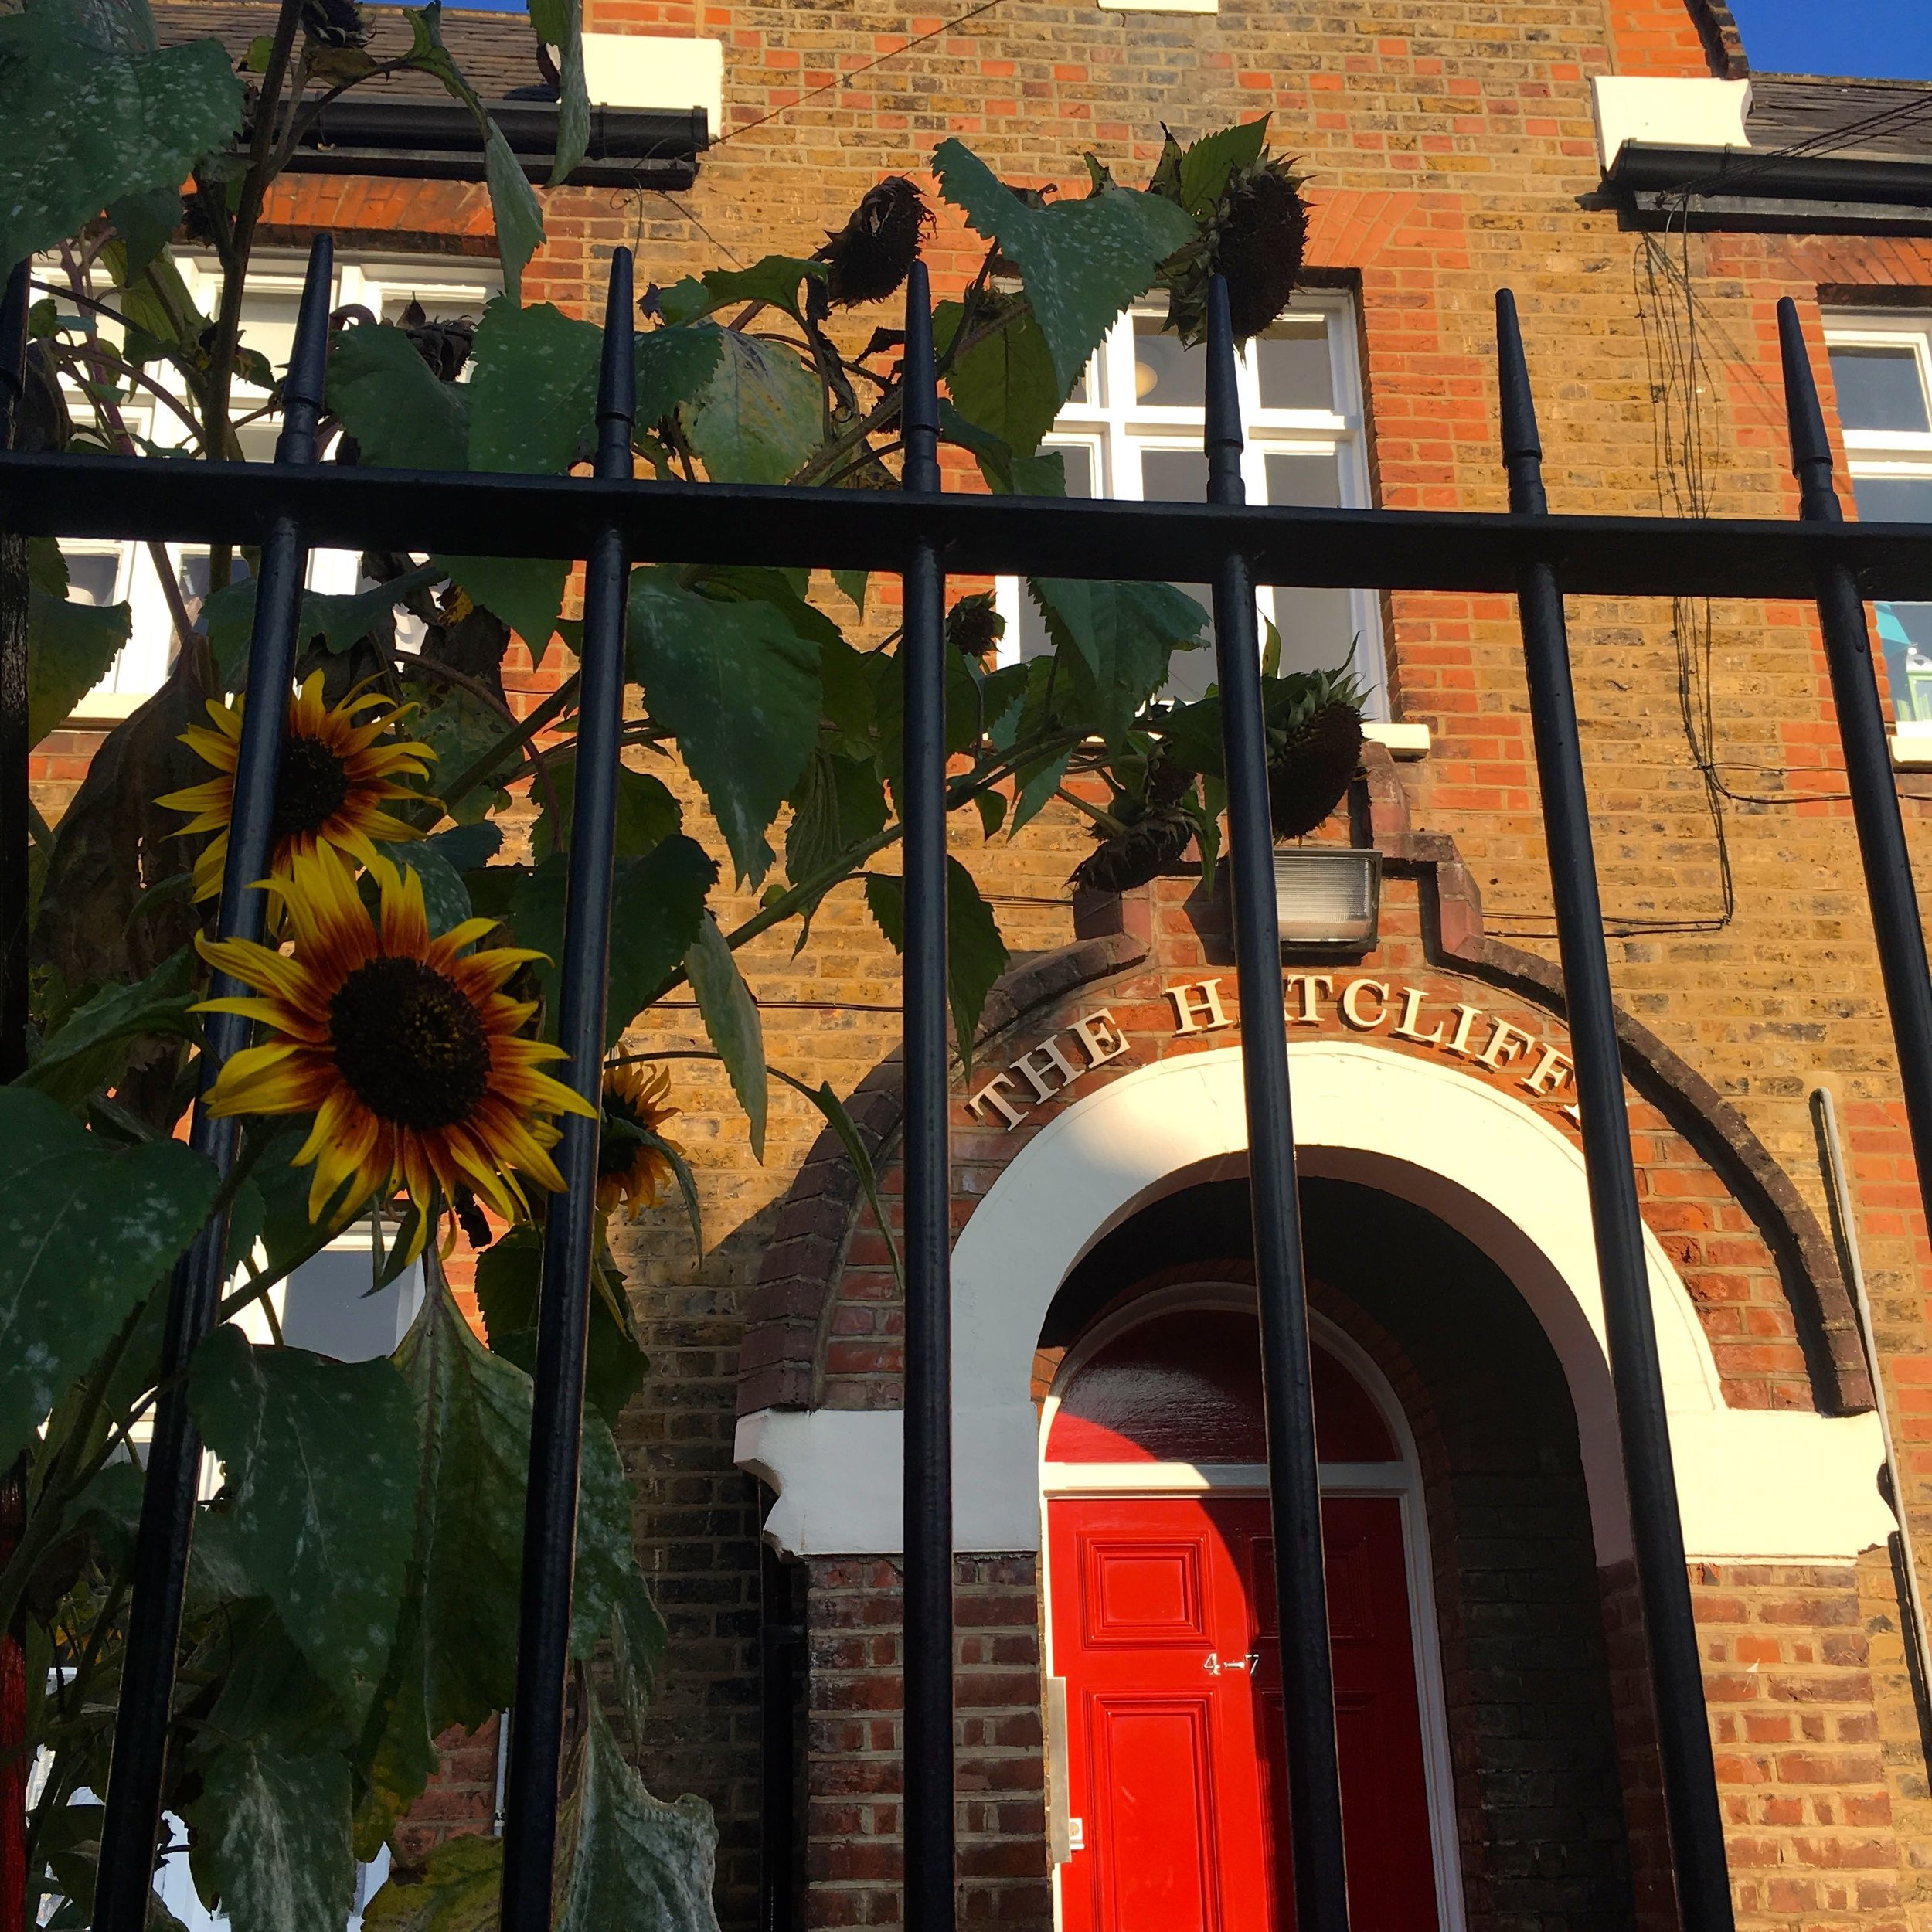 almshouses with sunflowers and a red front door in greenwich